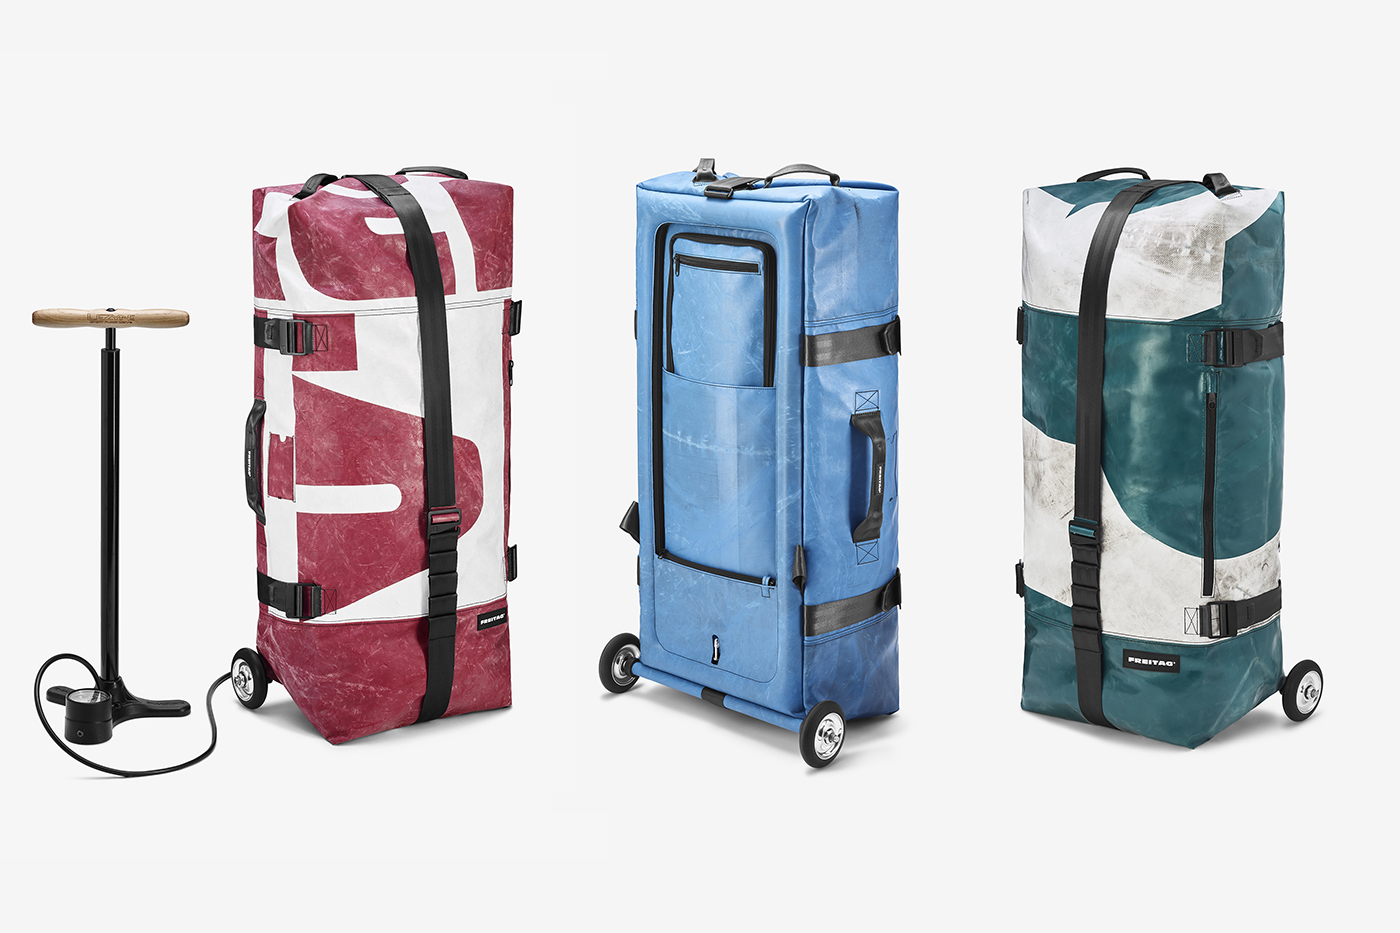 Introducing ZIPPELIN: a Travel Bag and Inflatable